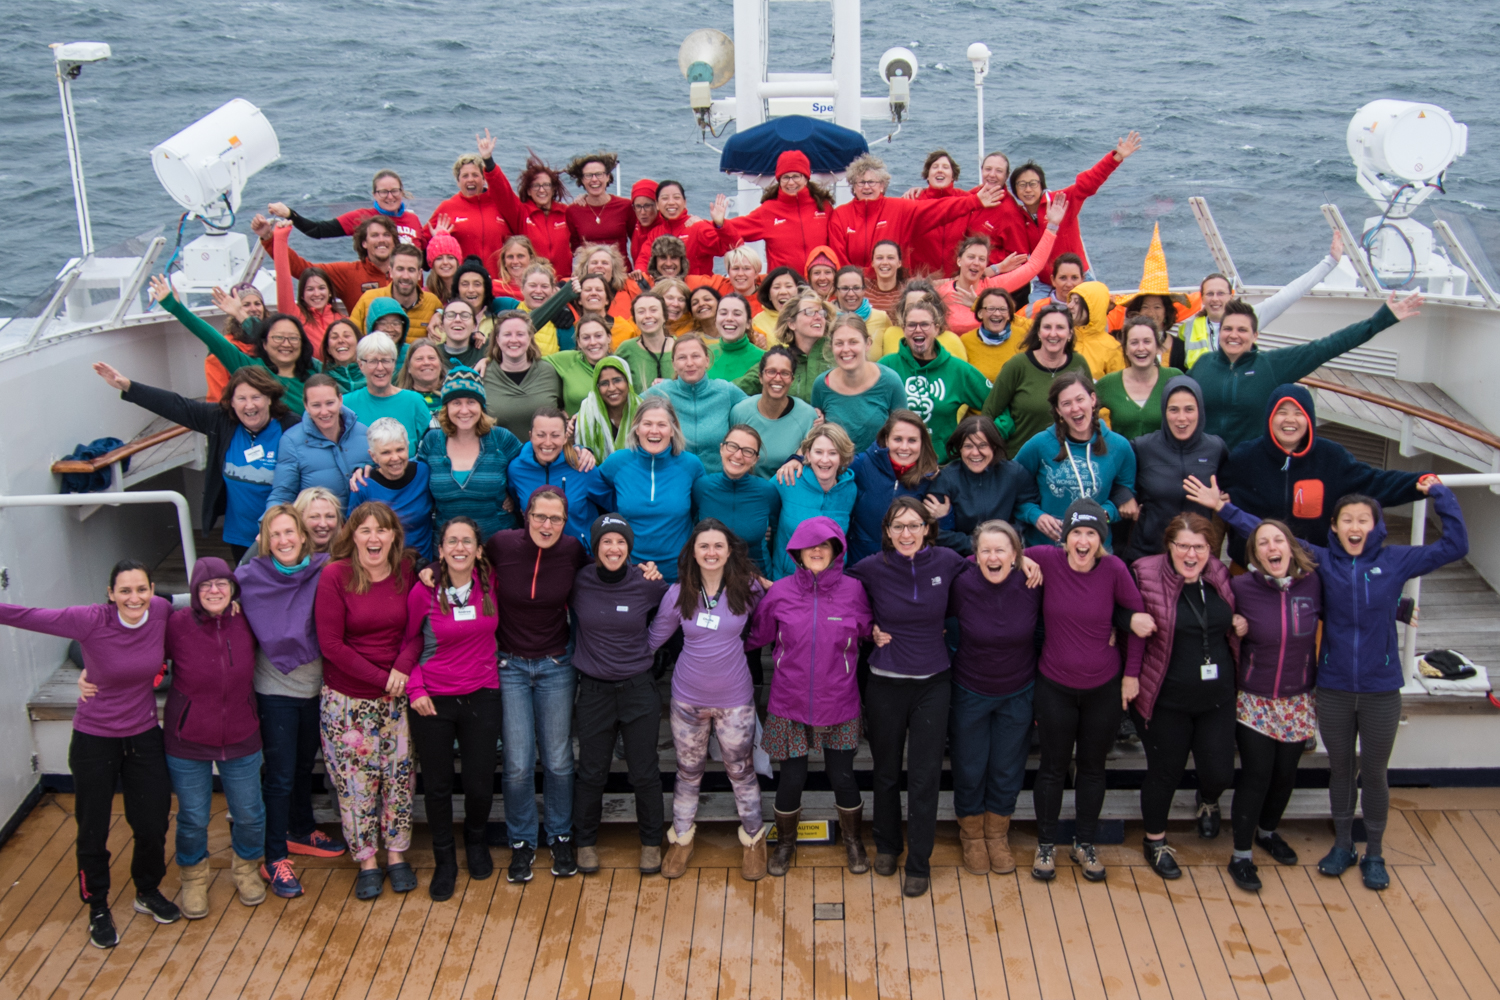 Women scientists form a human pride flag, forming 6 rows of rainbow stripes on the bow of a boat with their different colored clothing. The people are smiling, some with their arms triumphantly up. There is wavy grey water in the background.